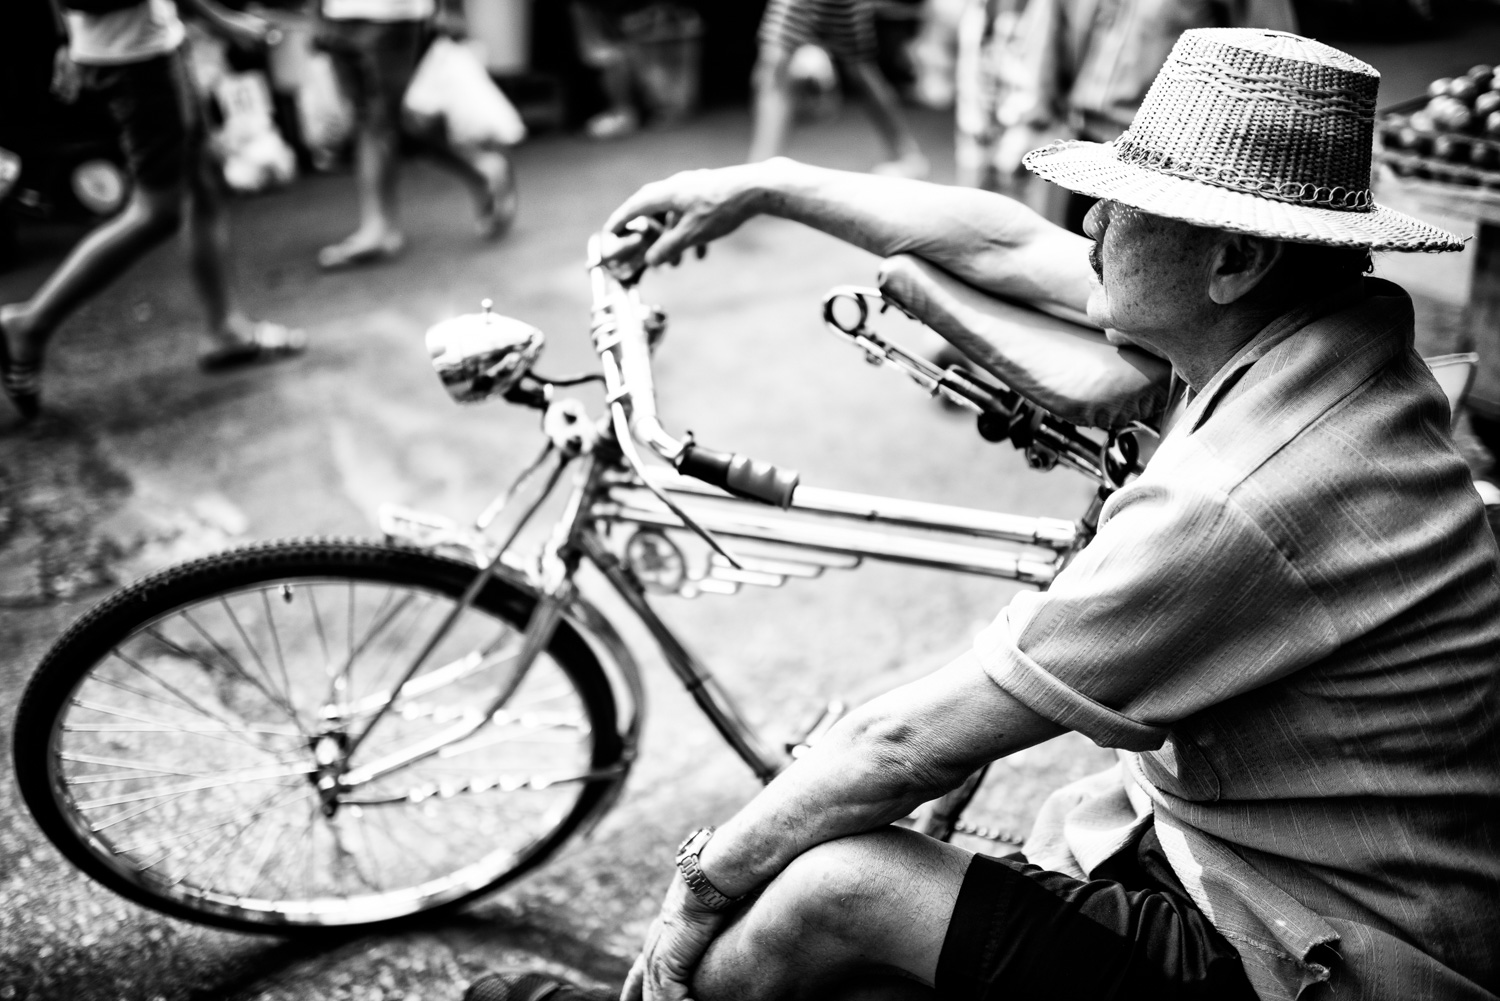 Tricycle Taxi Rest How to Create a Documentary Photography Project